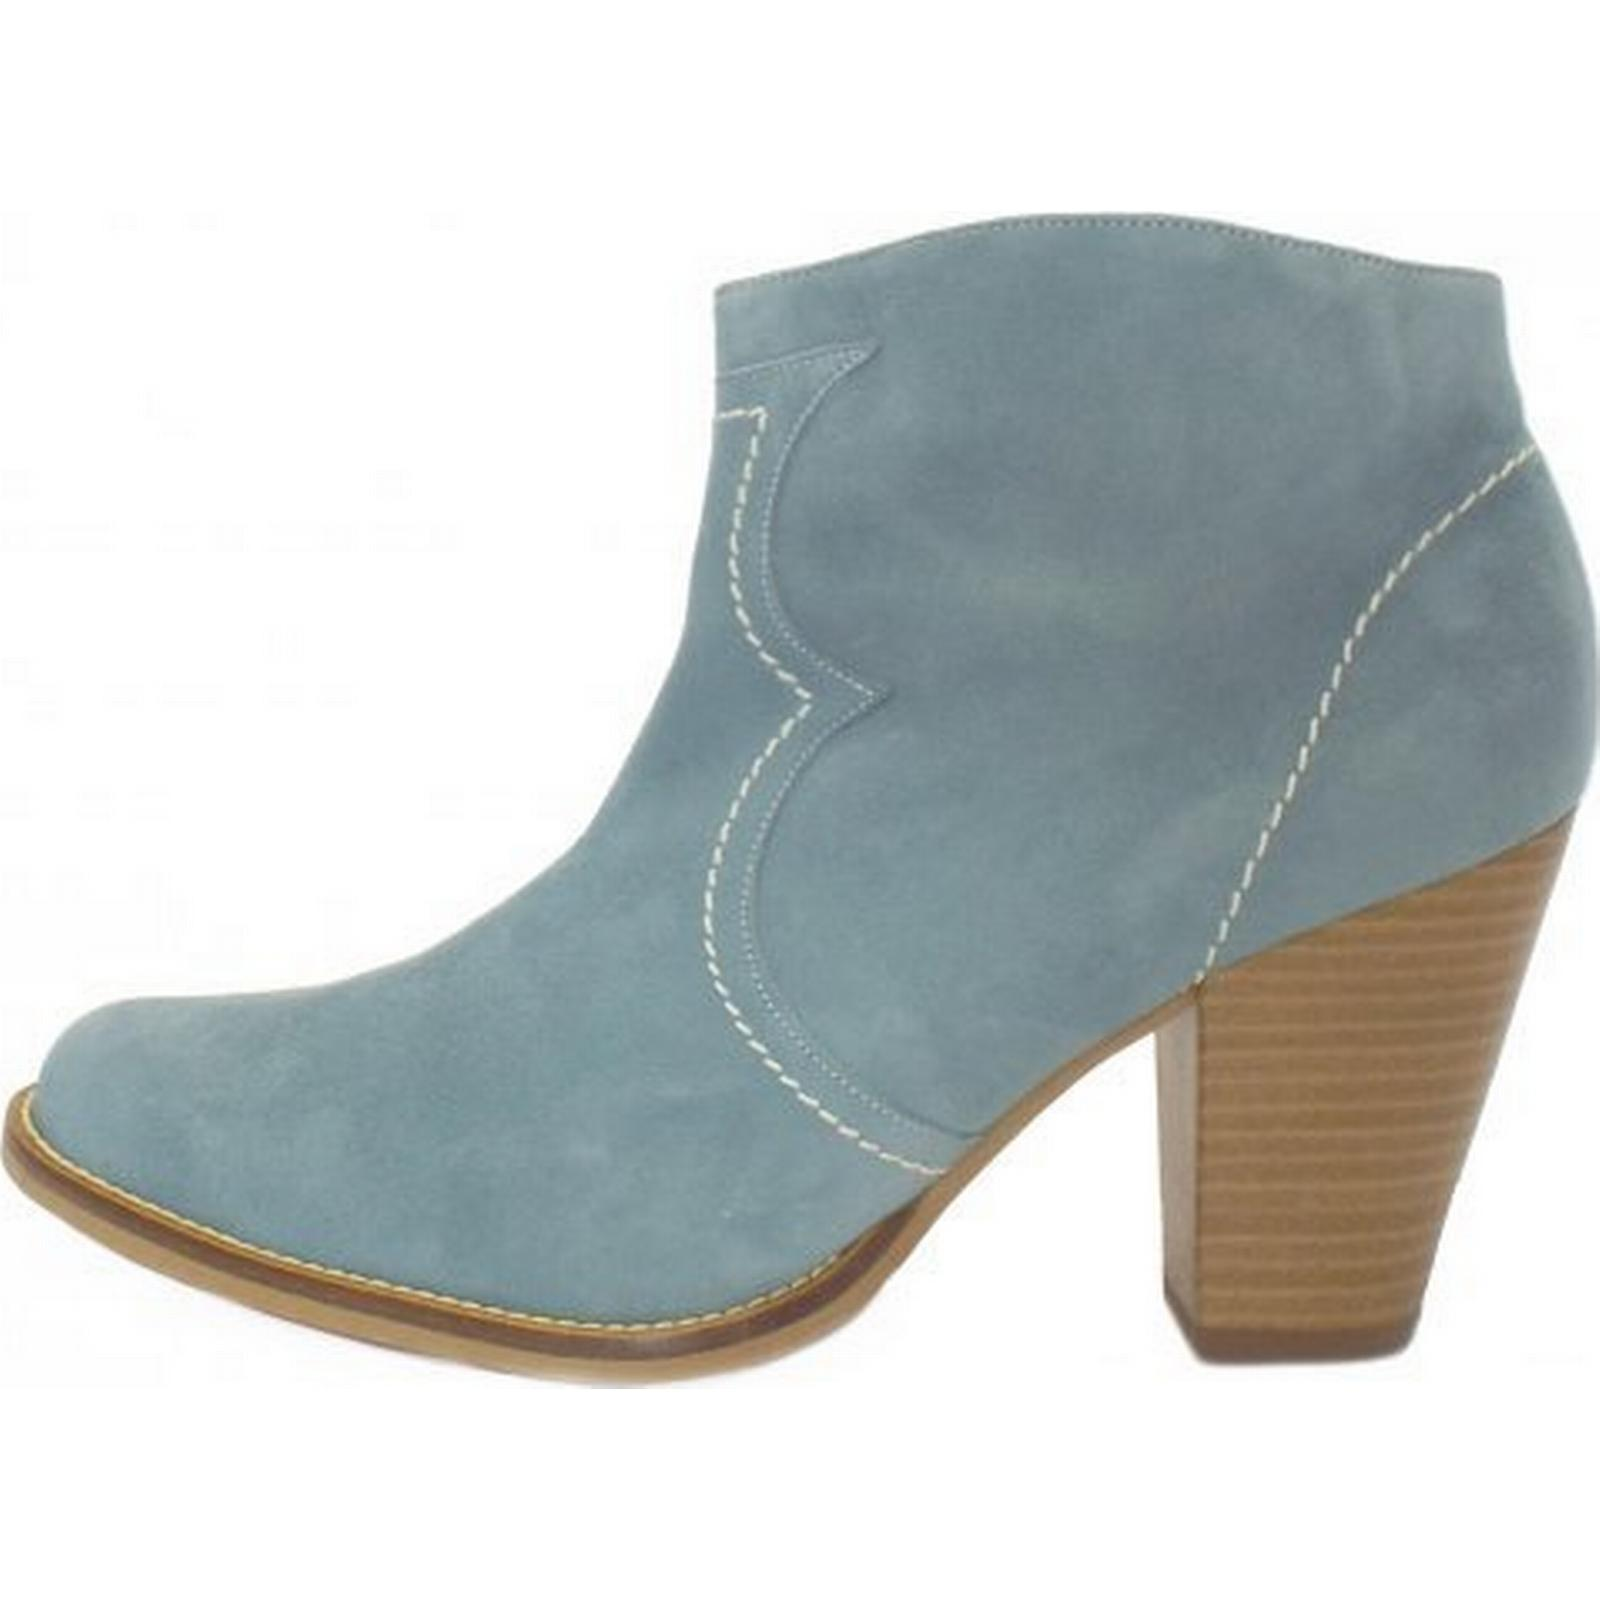 peter kaiser marisana daim bottines daim marisana bleu du pacifique couleur: c472cd